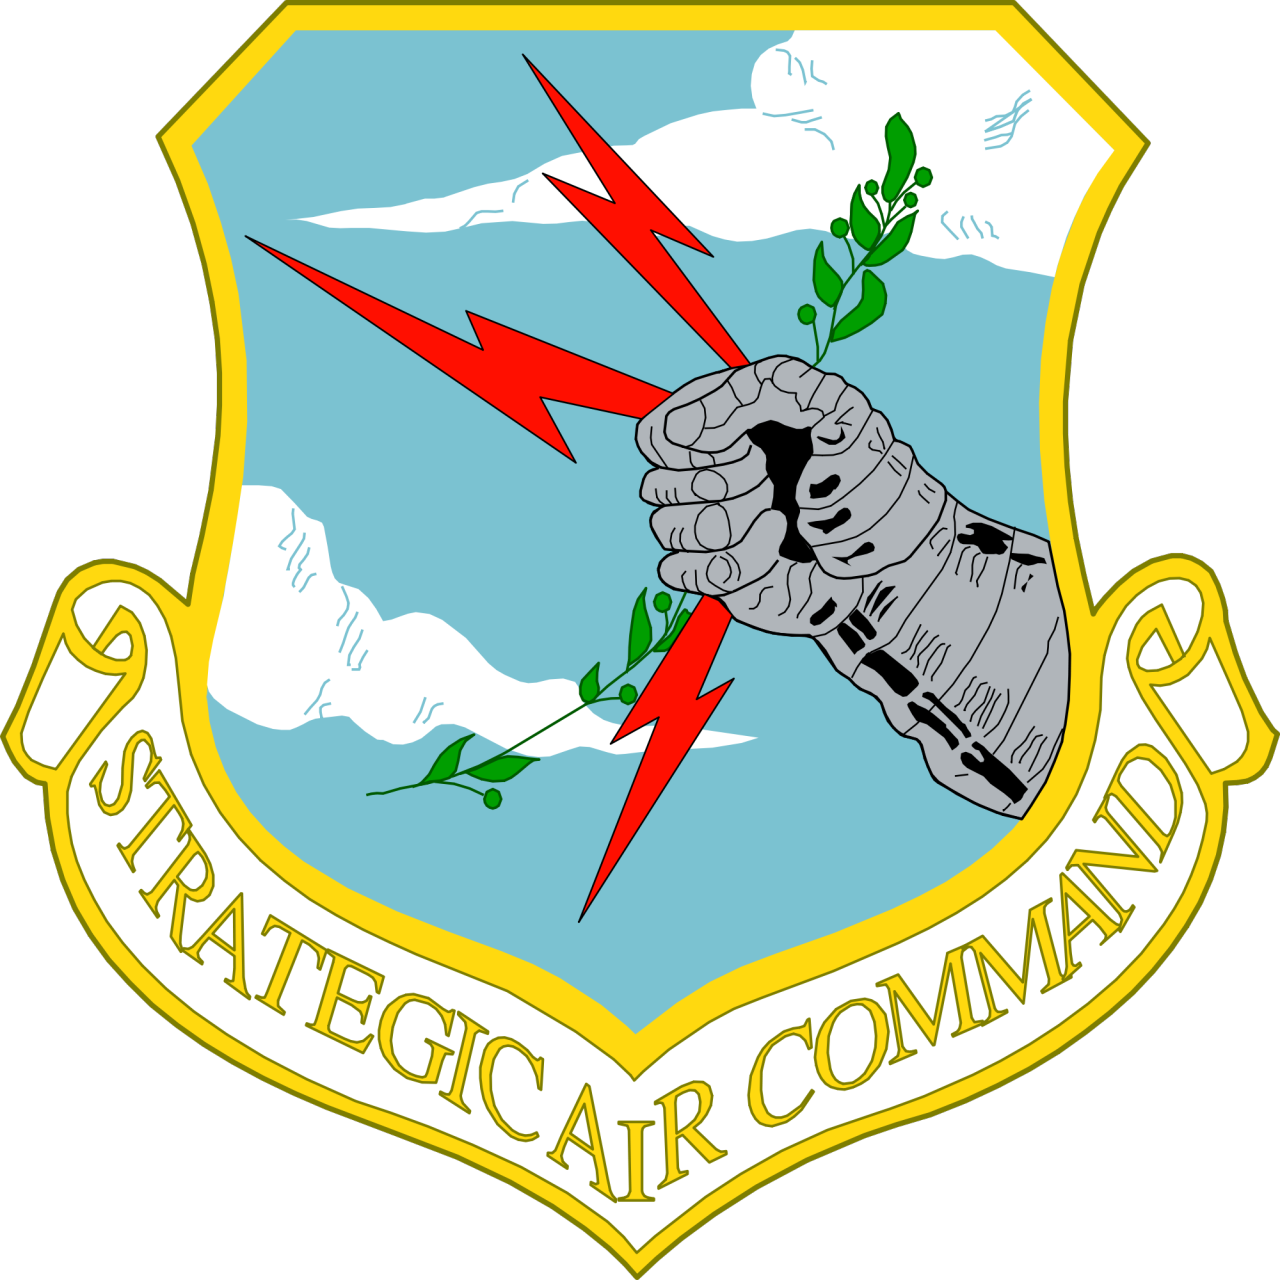 Http s21 postimg org wrqovk8dj screenshot_658 clipart clipart royalty free download Us armed forces logo clipart - RelishTopia | Cliparts ... clipart royalty free download